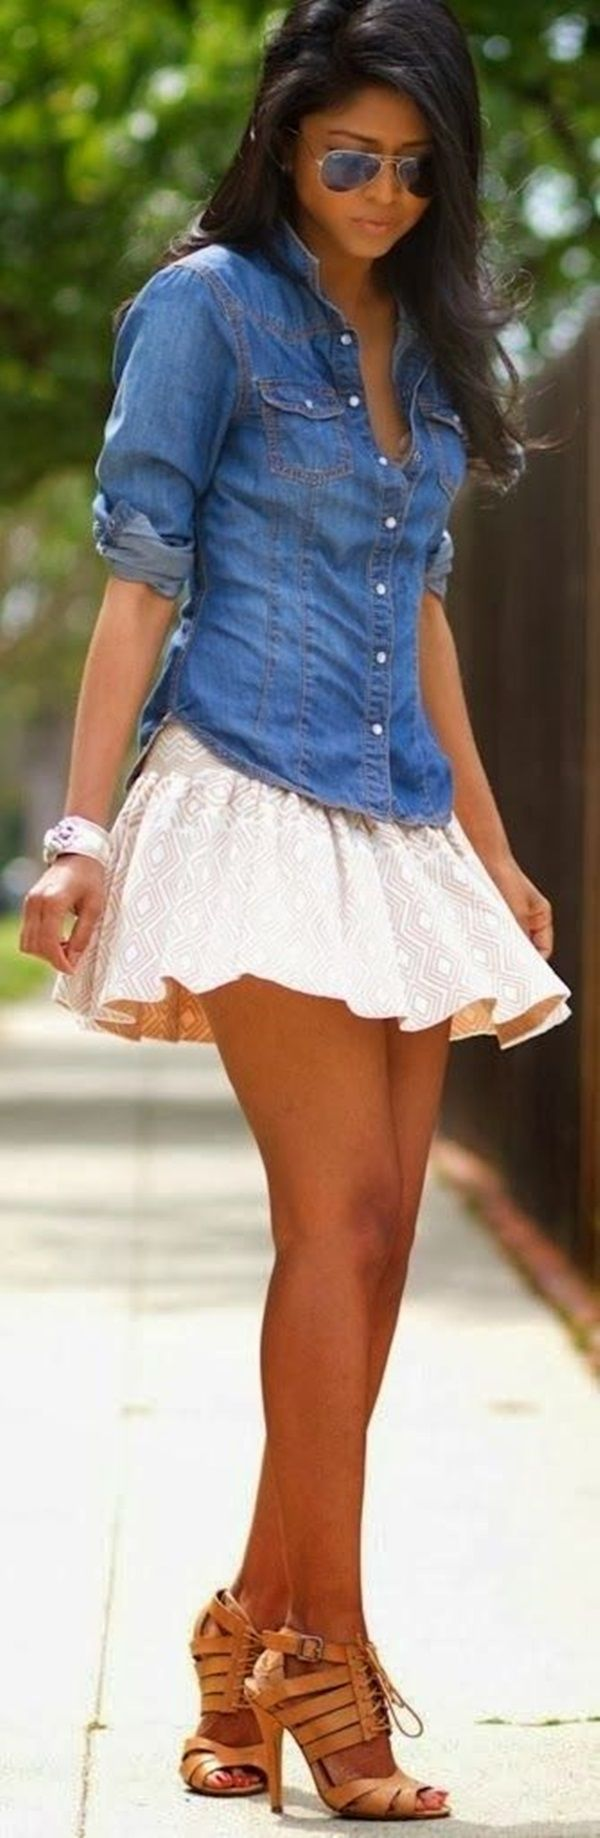 Simple and Cute Outfit Ideas : Style is a way to say who you are without having to speak.